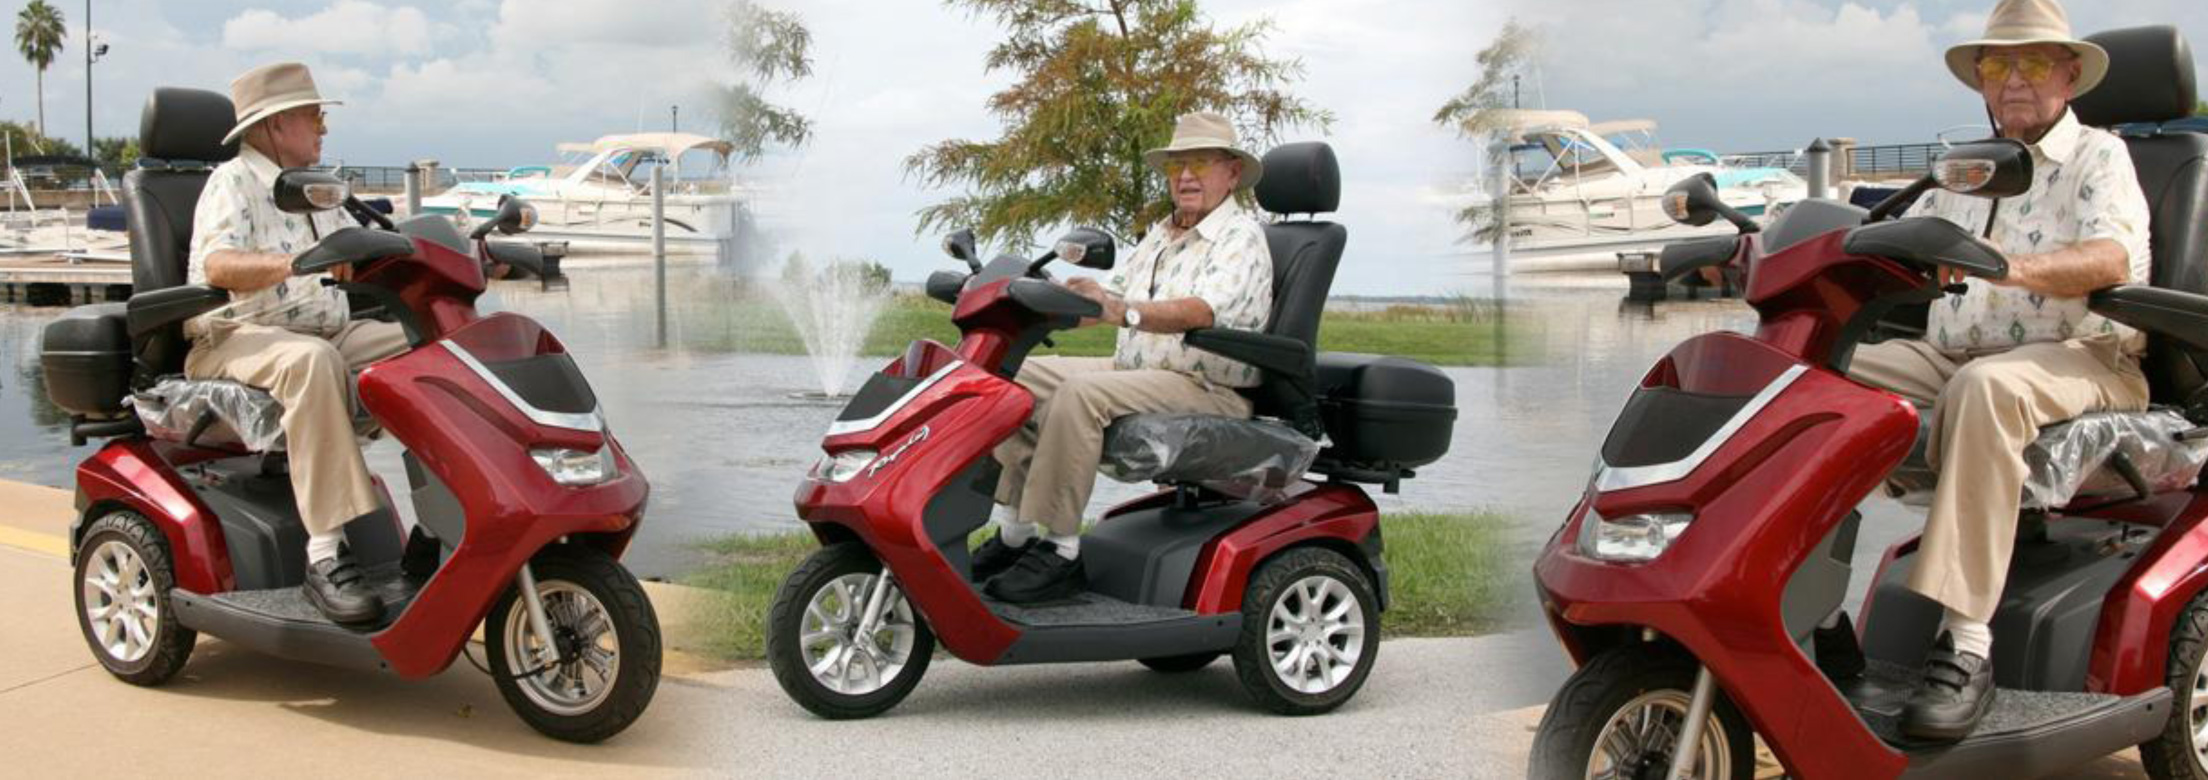 Royal 3 scooter